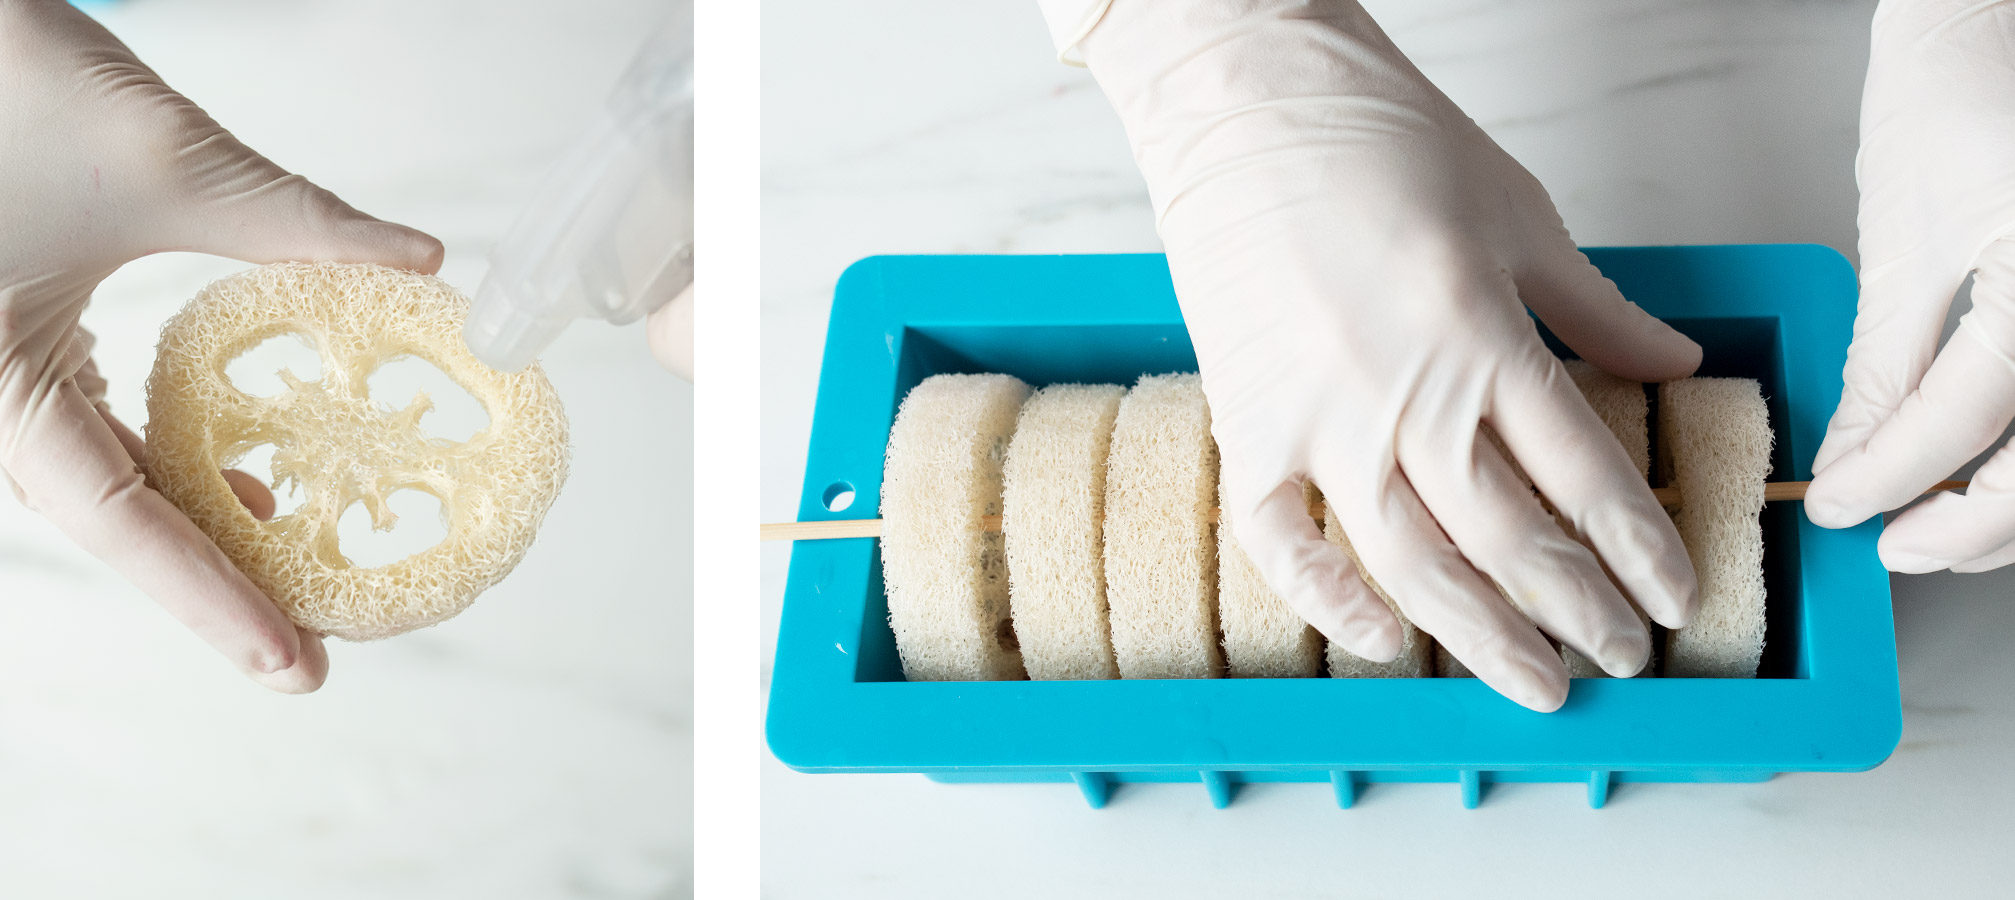 Placing loofah into silicone mold